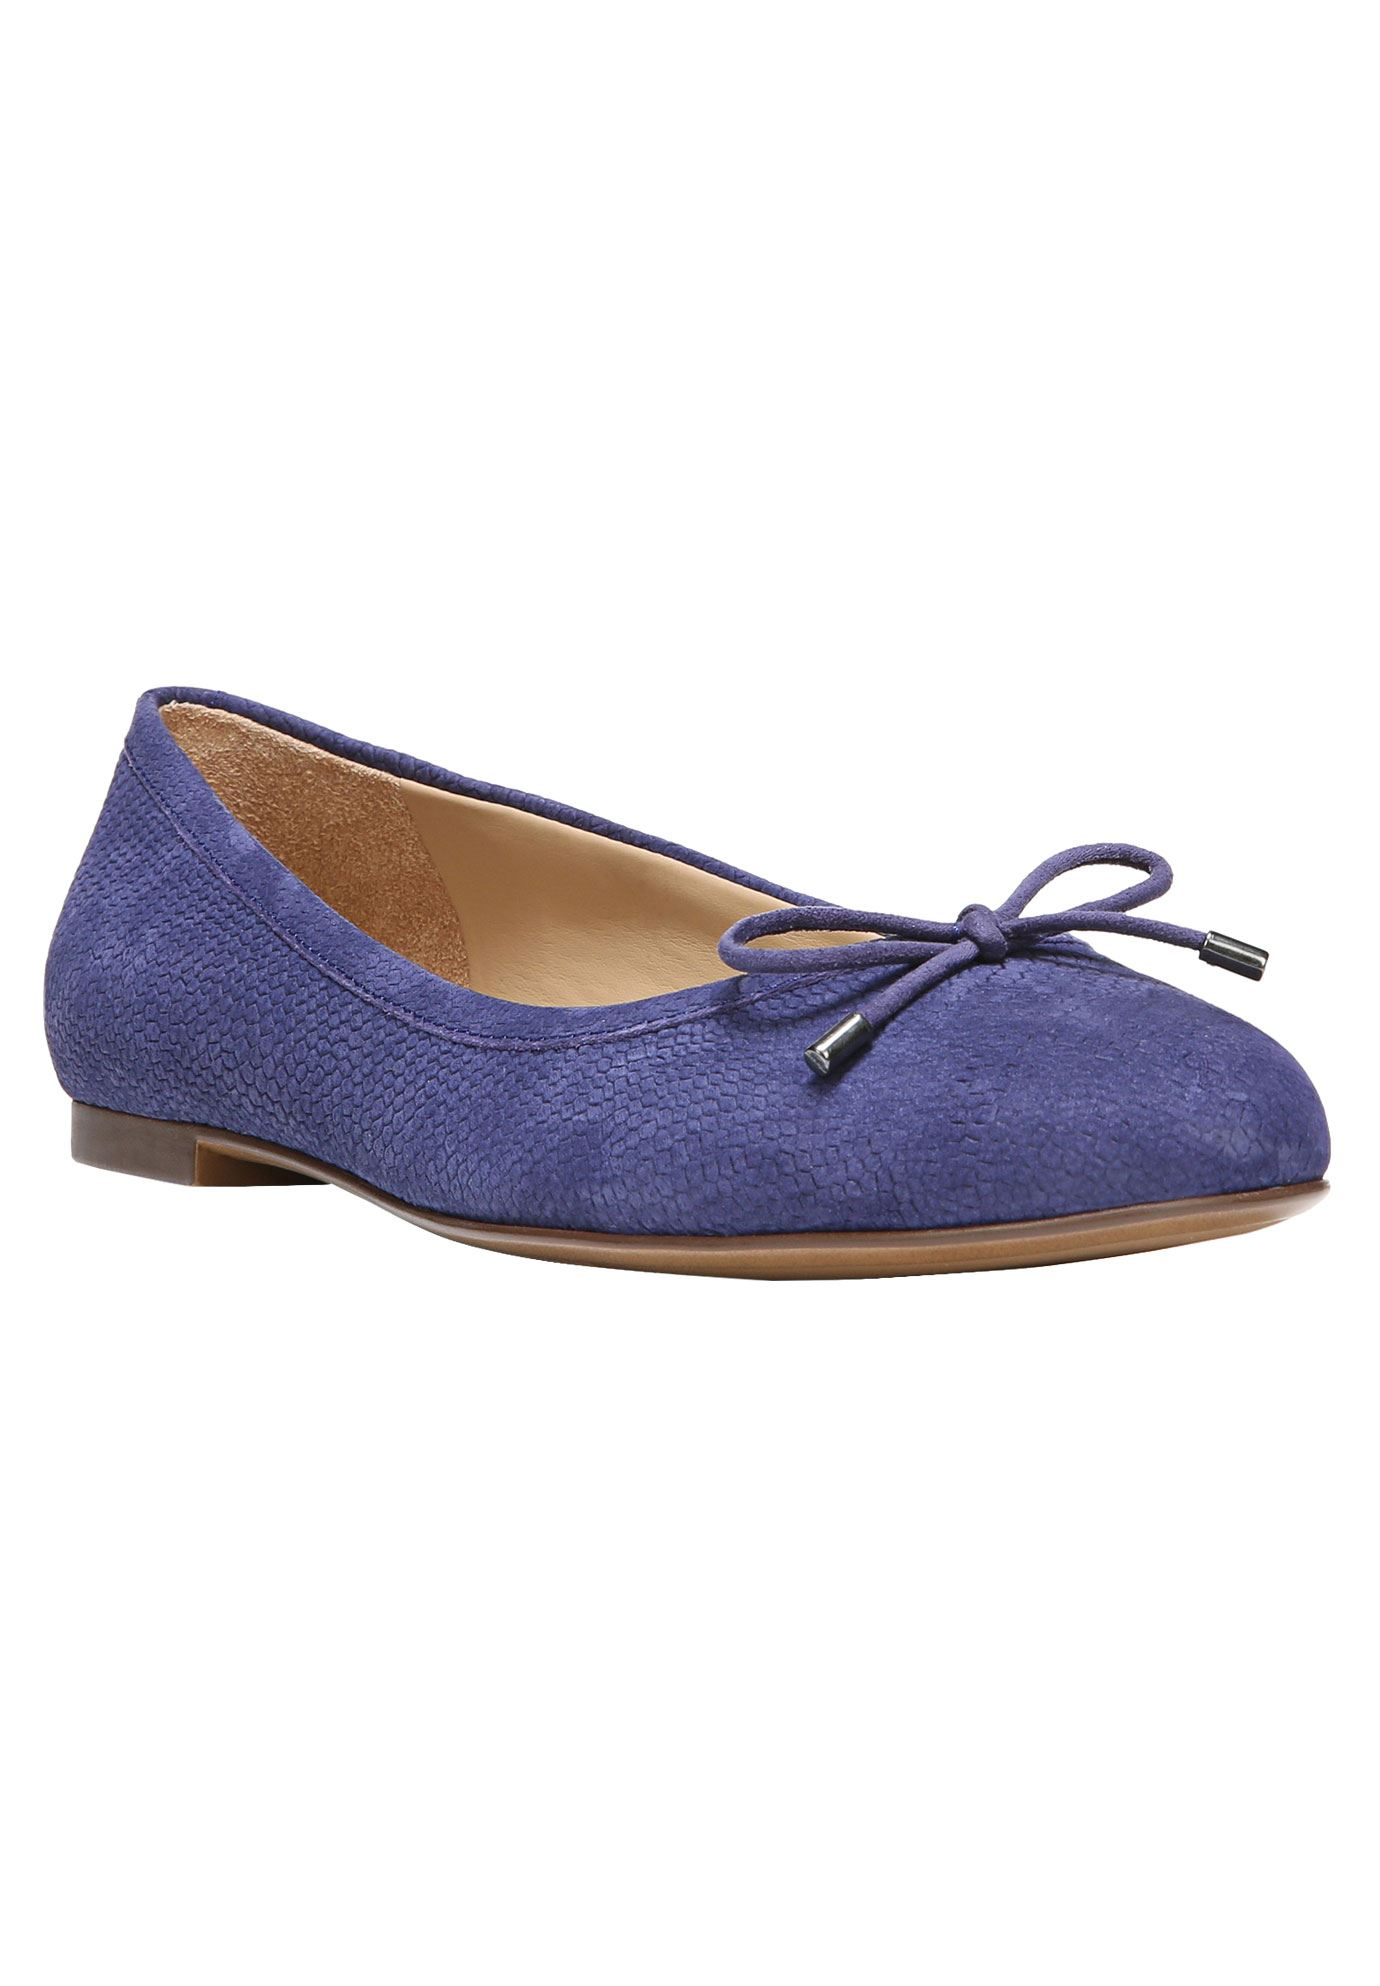 Grace Flats by Naturalizer®,